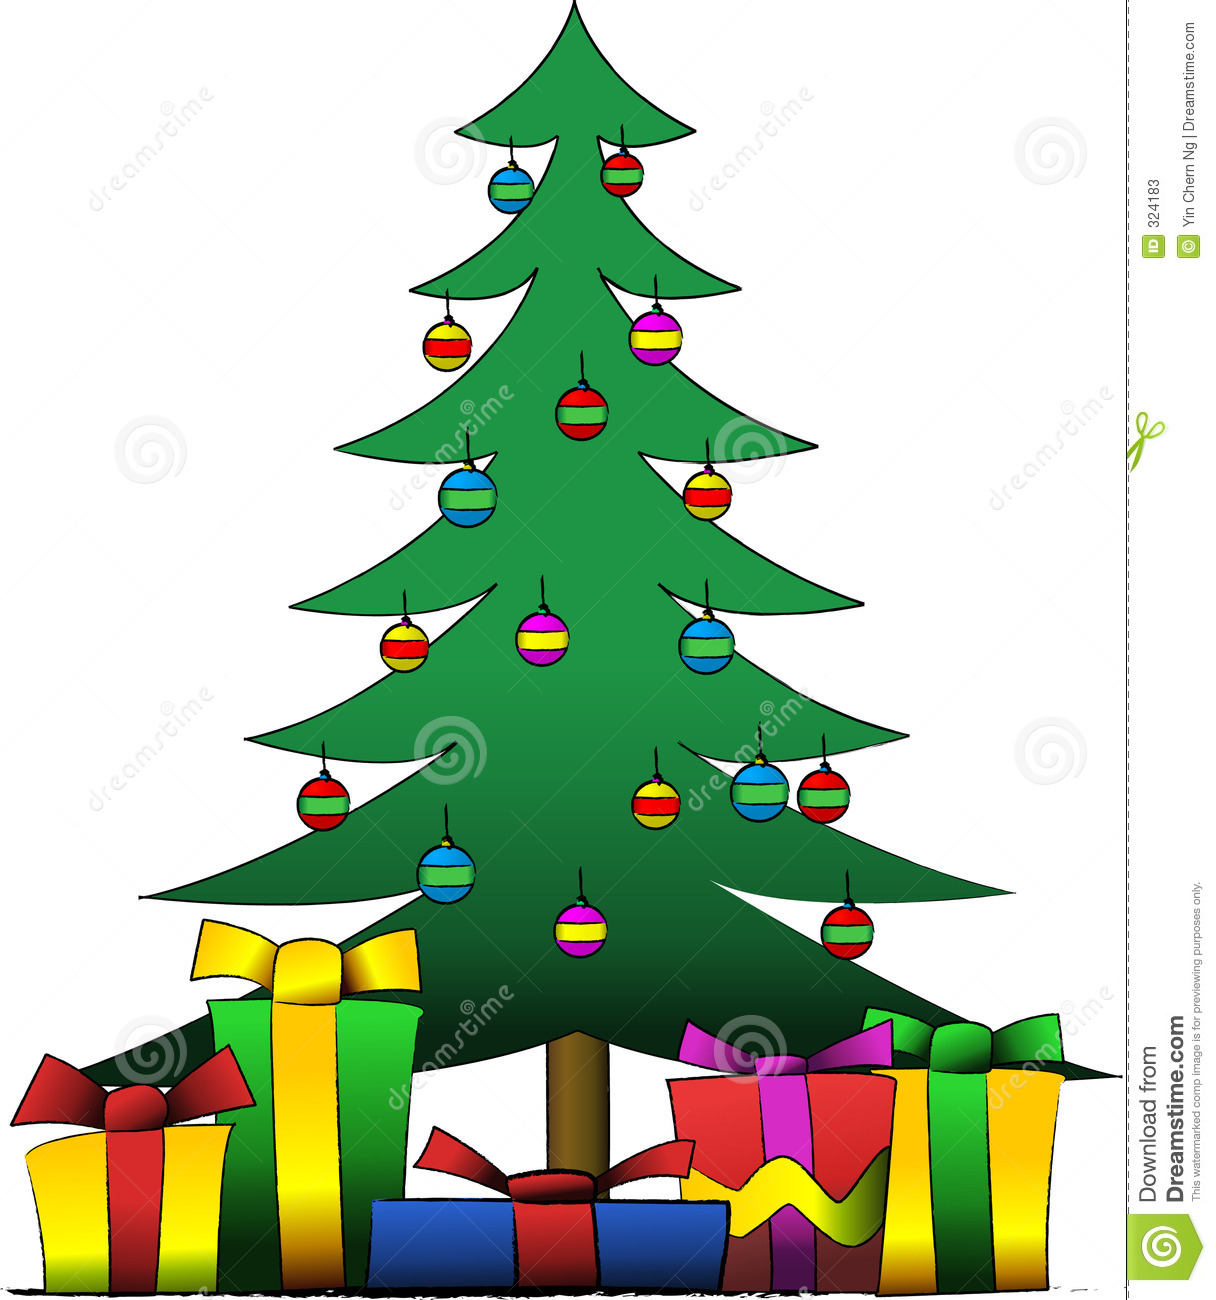 Presents Under The Christmas Tree: Christmas Tree And Presents Stock Vector